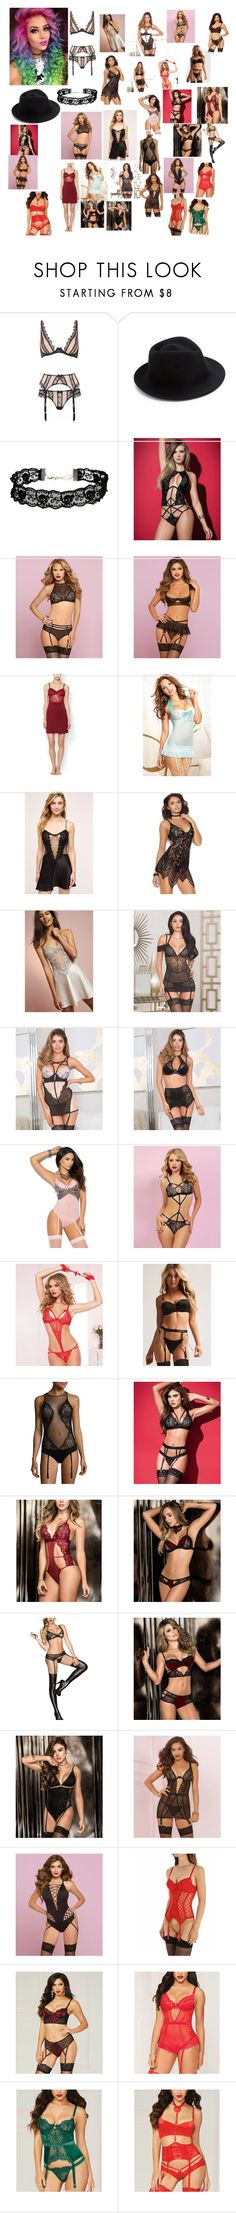 """""""What kimmie bought"""" by bandloverforever12 ❤ liked on Polyvore featuring Agent Provocateur, Eugenia Kim, ASOS, Mapalé, Seven 'til Midnight, Blush Lingerie, WithChic, Flora Nikrooz, Elegant Moments and iCollection"""